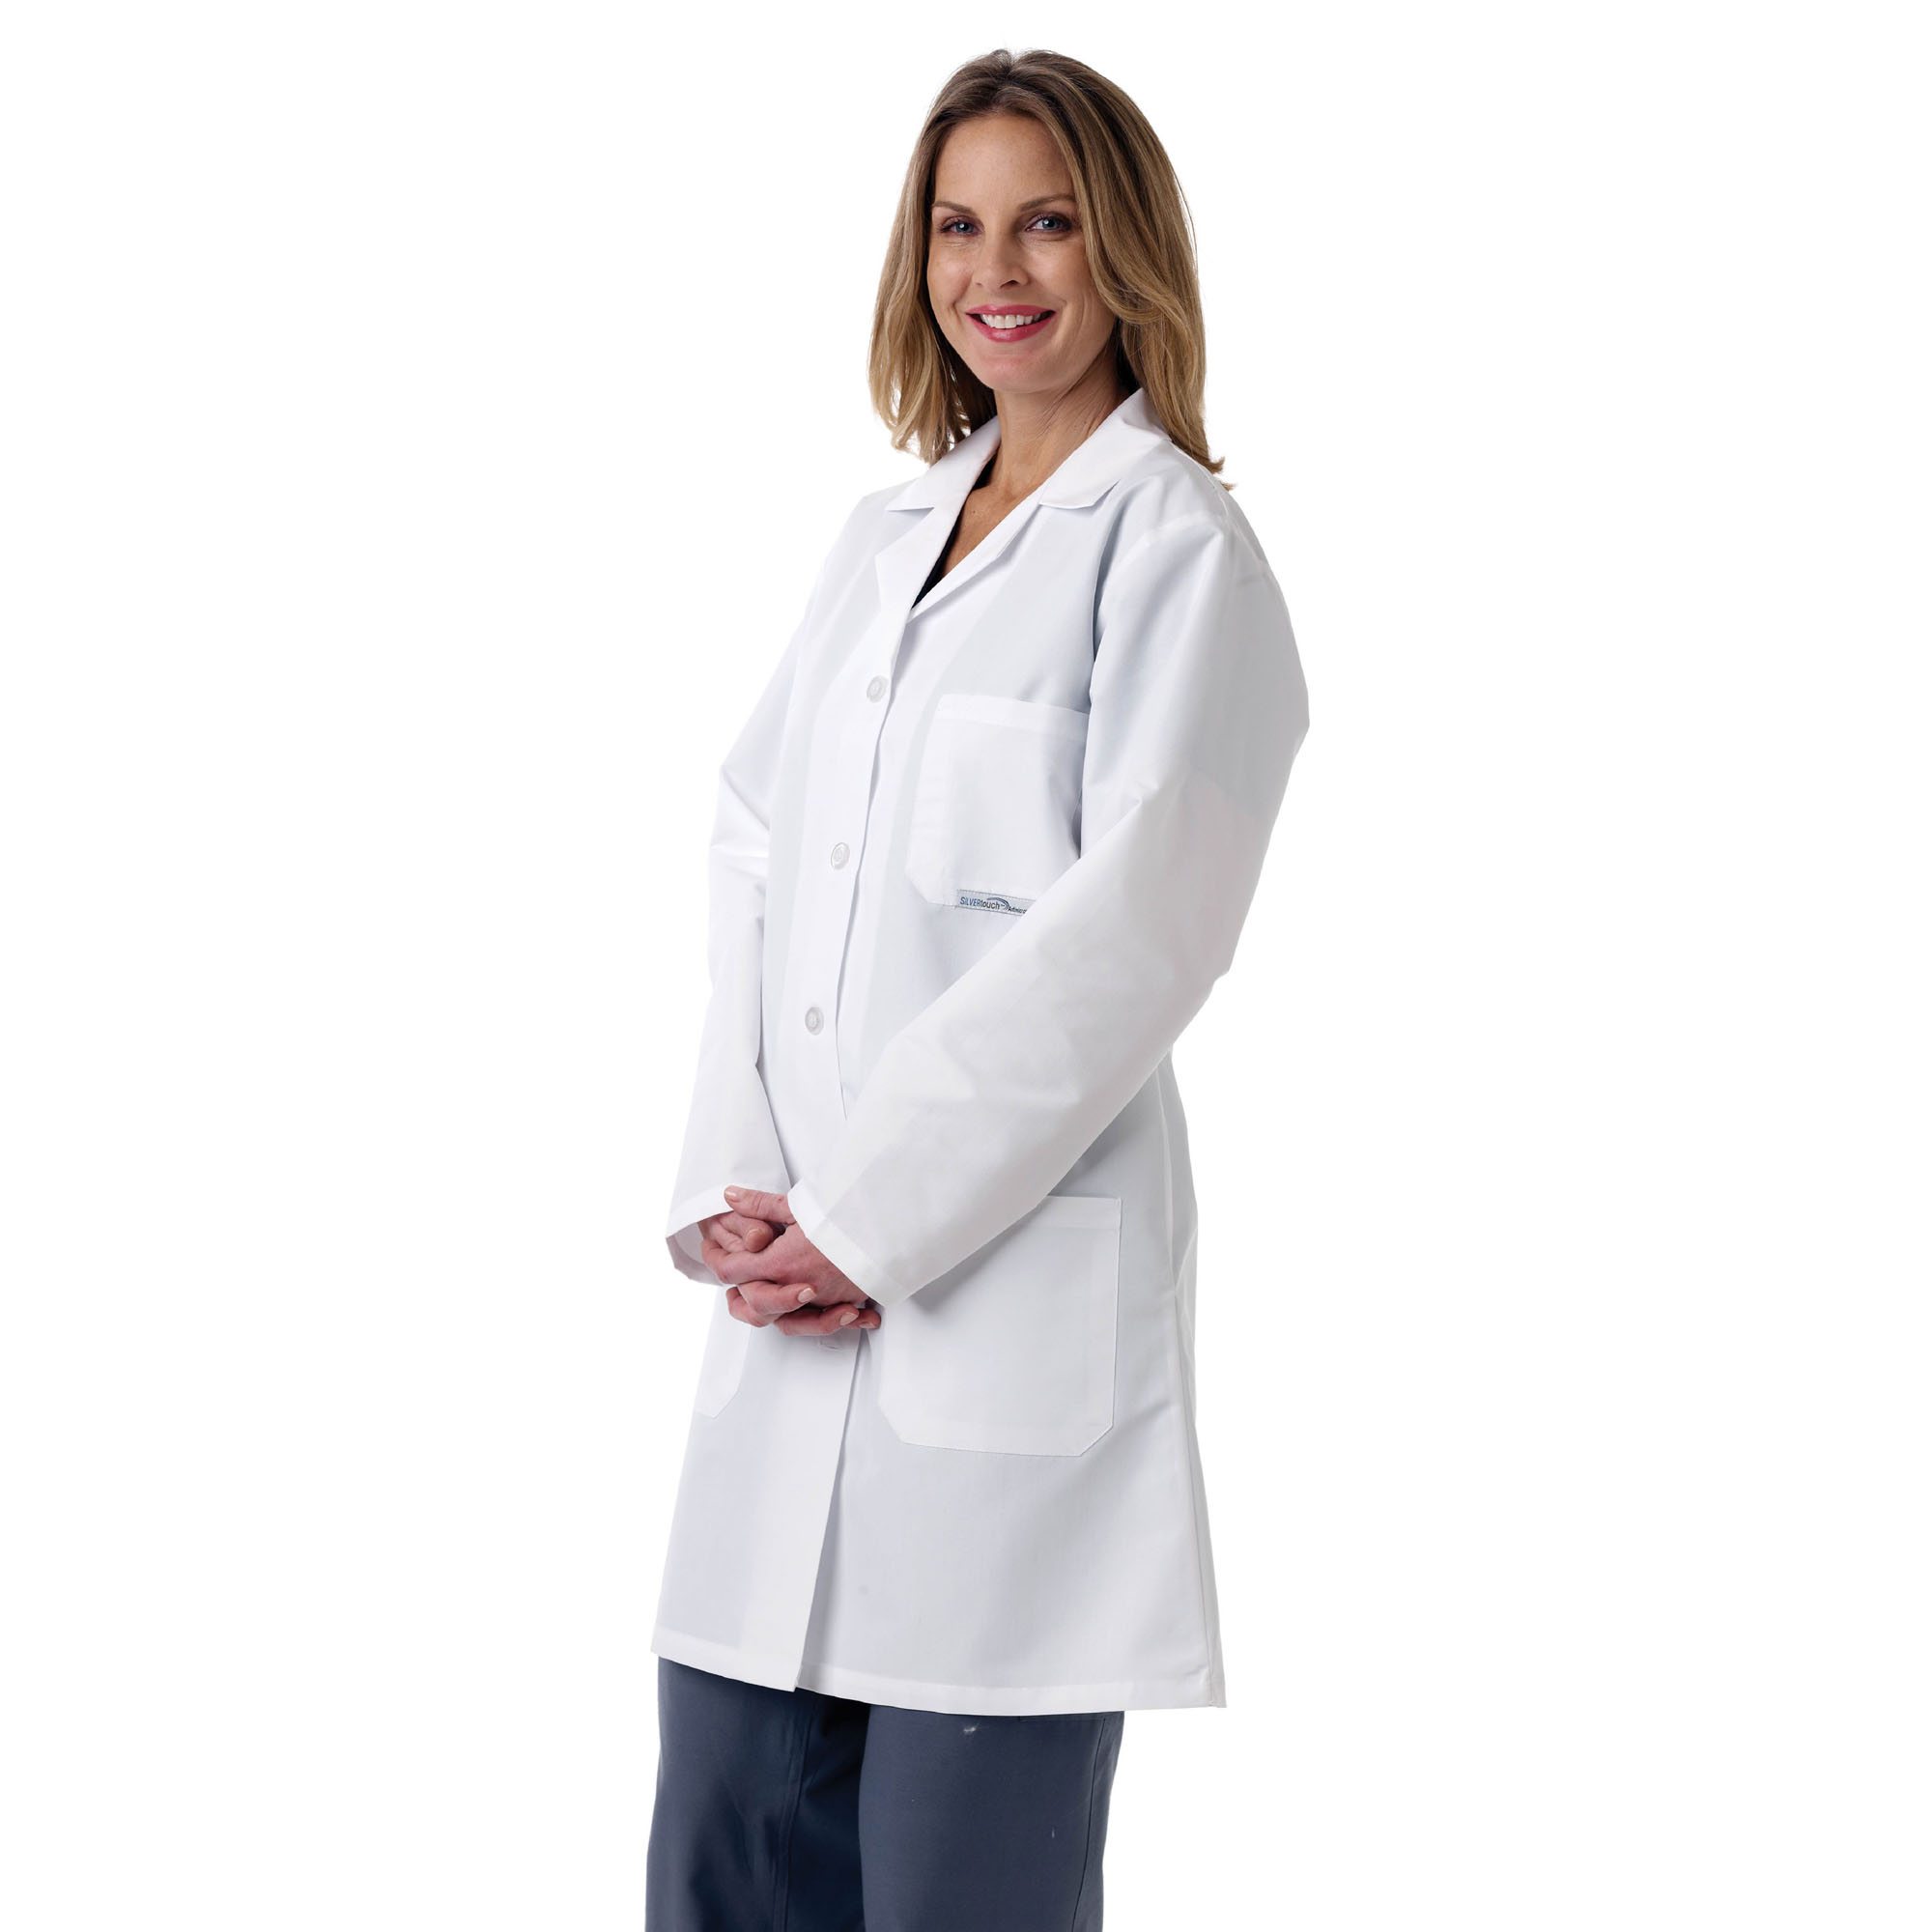 2 OF LAB COAT,LADIES FULL LENGTH,SMALL